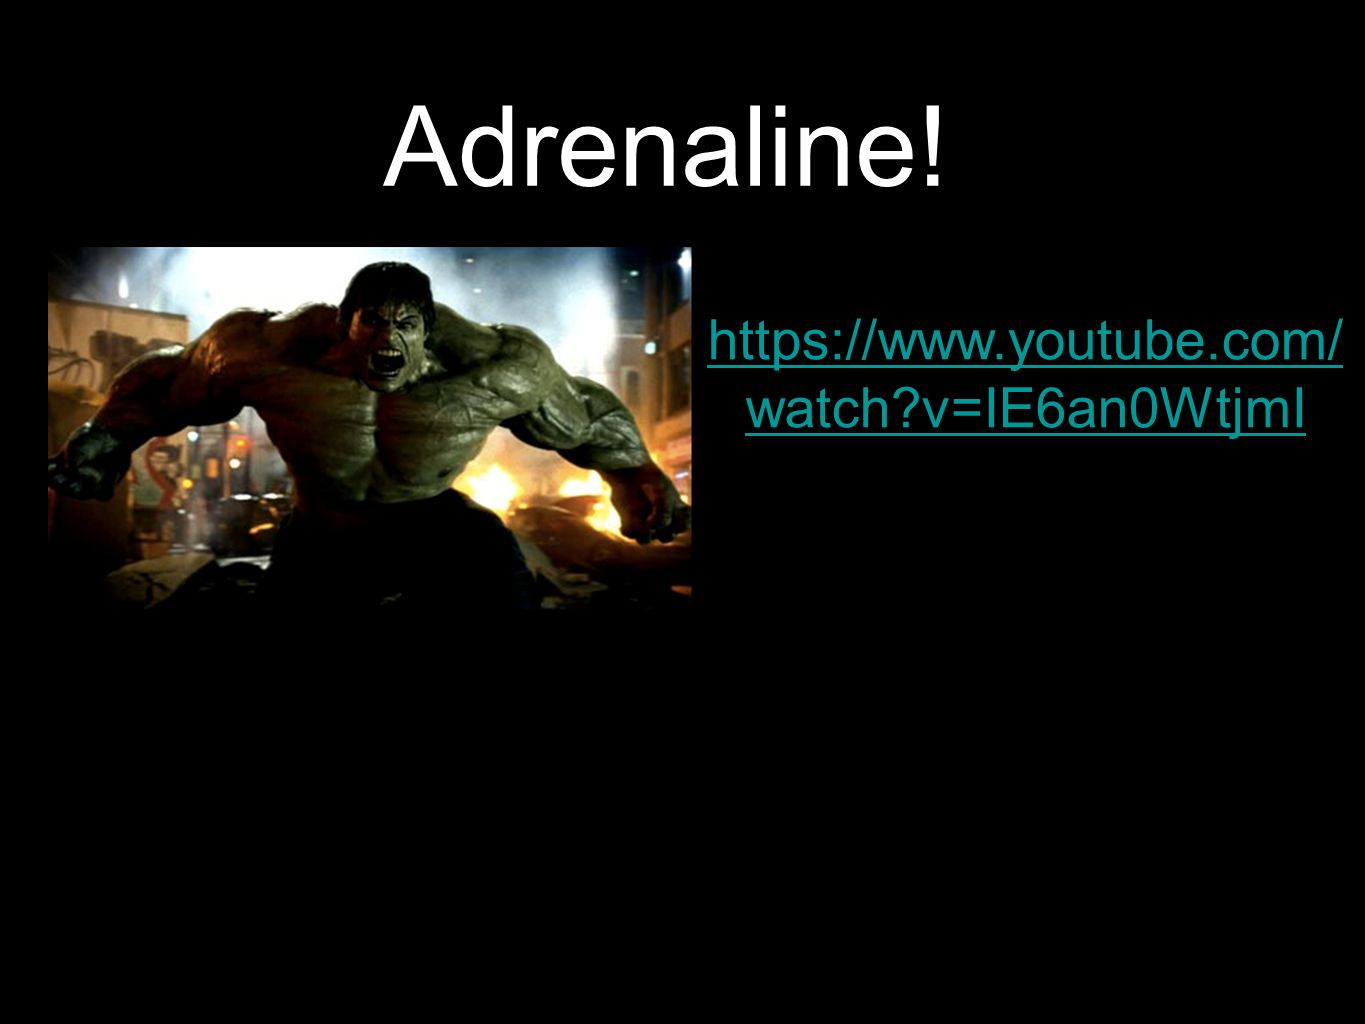 Adrenaline!   watch v=IE6an0WtjmI